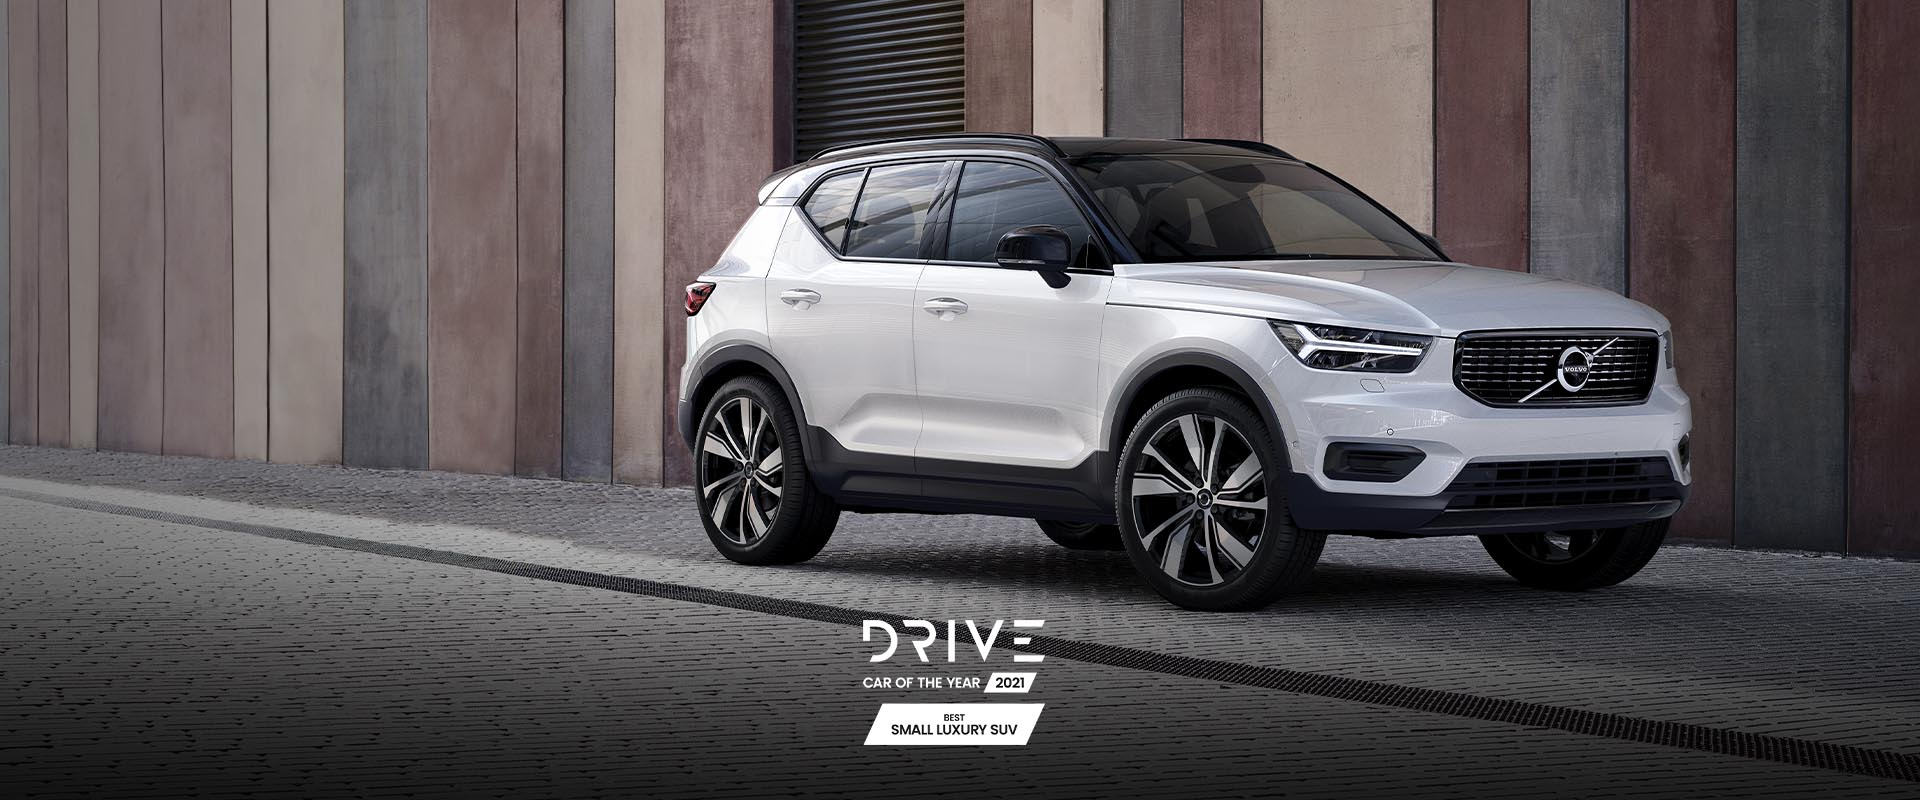 Drive Car of the Year - XC40